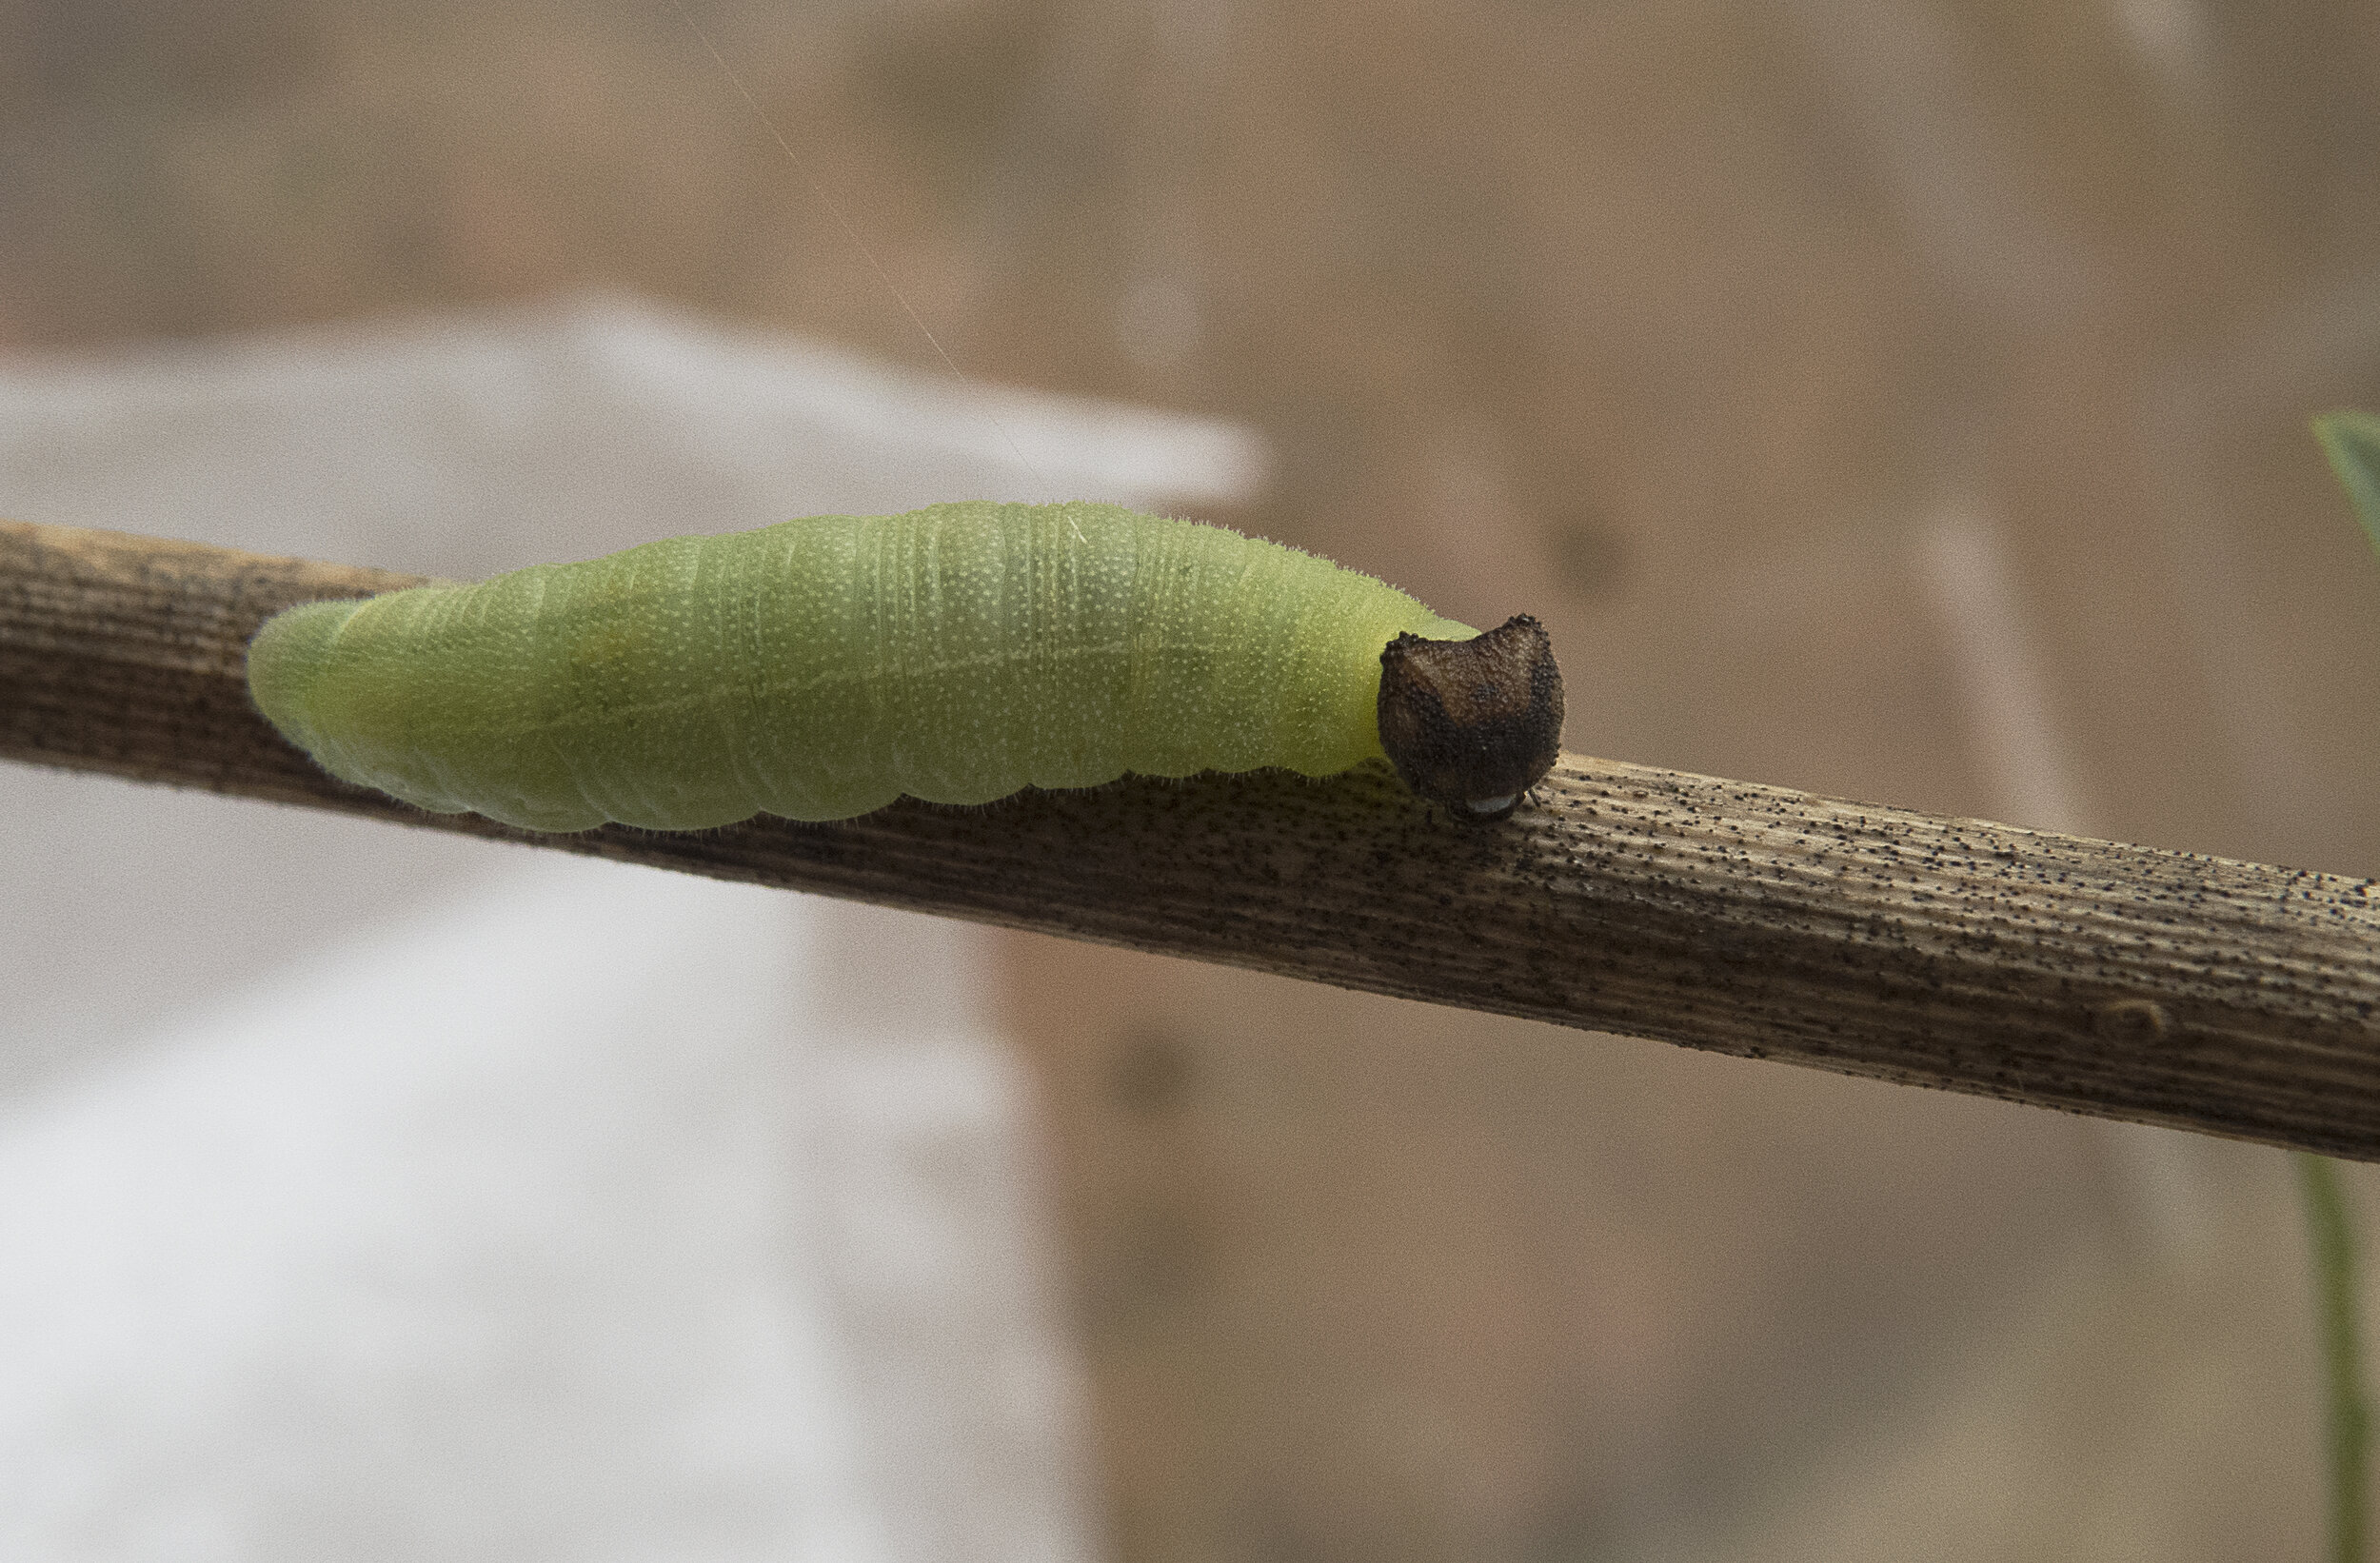 A Wild Indigo Duskywing caterpillar searching for a cozy winter resting spot among stem and leaf litter